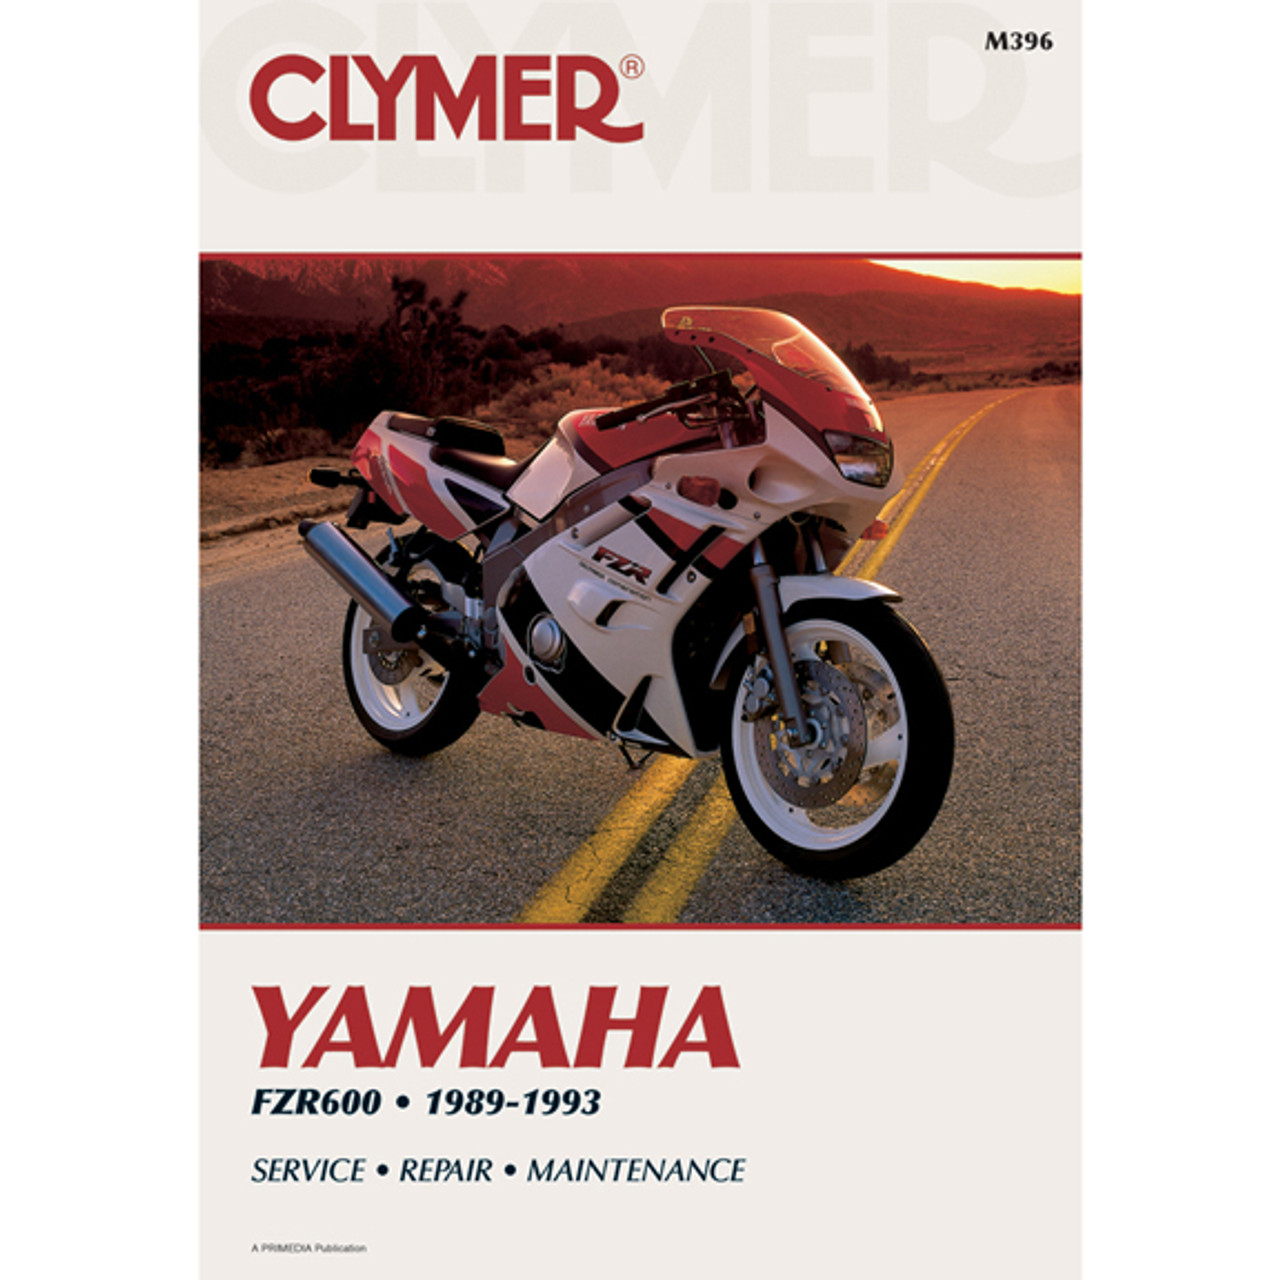 Clymer M396 Service Shop Repair Manual Yamaha FZR600 89-93